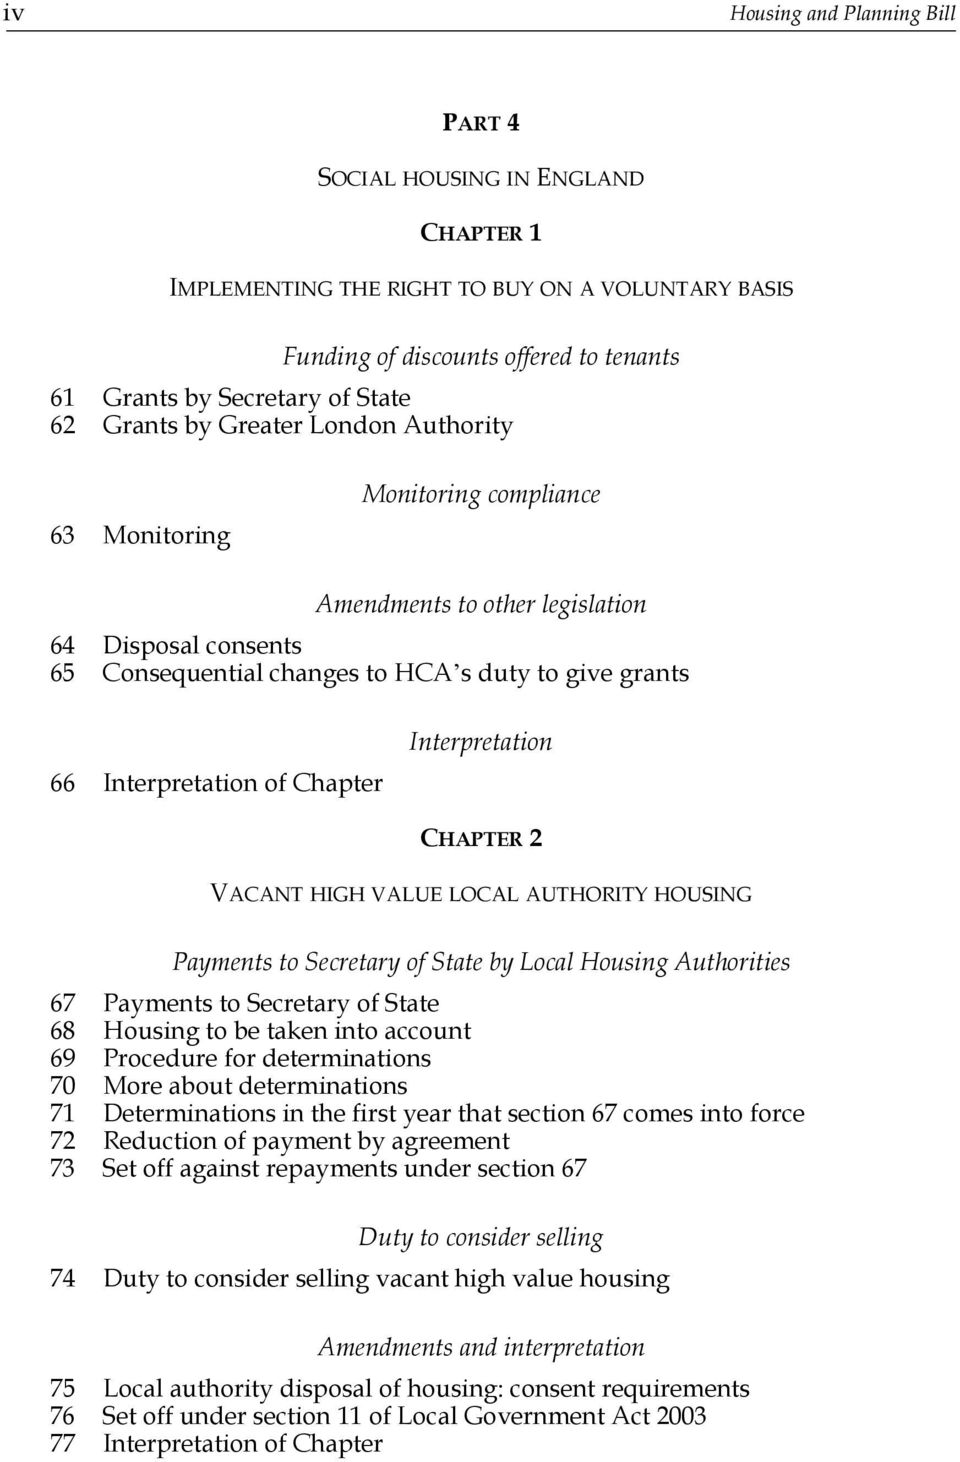 Chapter Interpretation CHAPTER 2 VACANT HIGH VALUE LOCAL AUTHORITY HOUSING Payments to Secretary of State by Local Housing Authorities 67 Payments to Secretary of State 68 Housing to be taken into